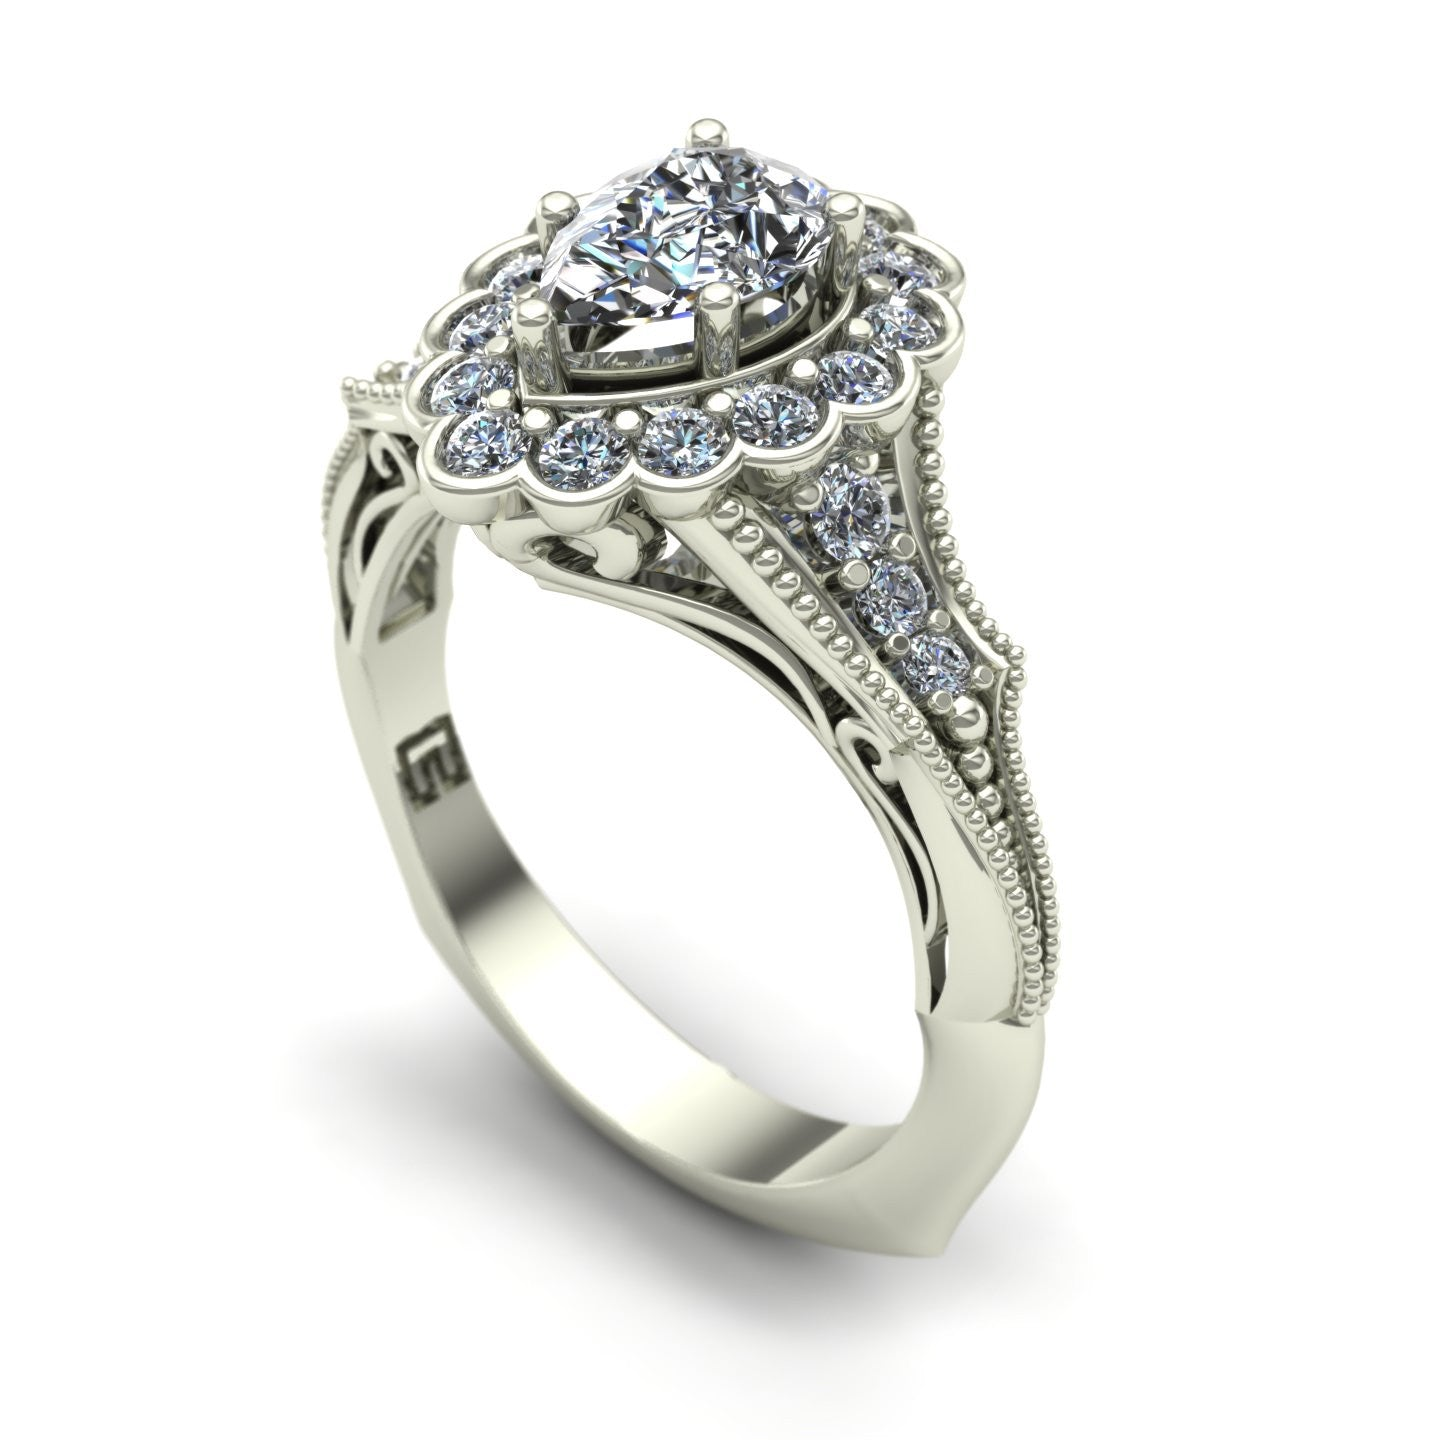 Pear-cut diamond engagement ring in 18k white gold